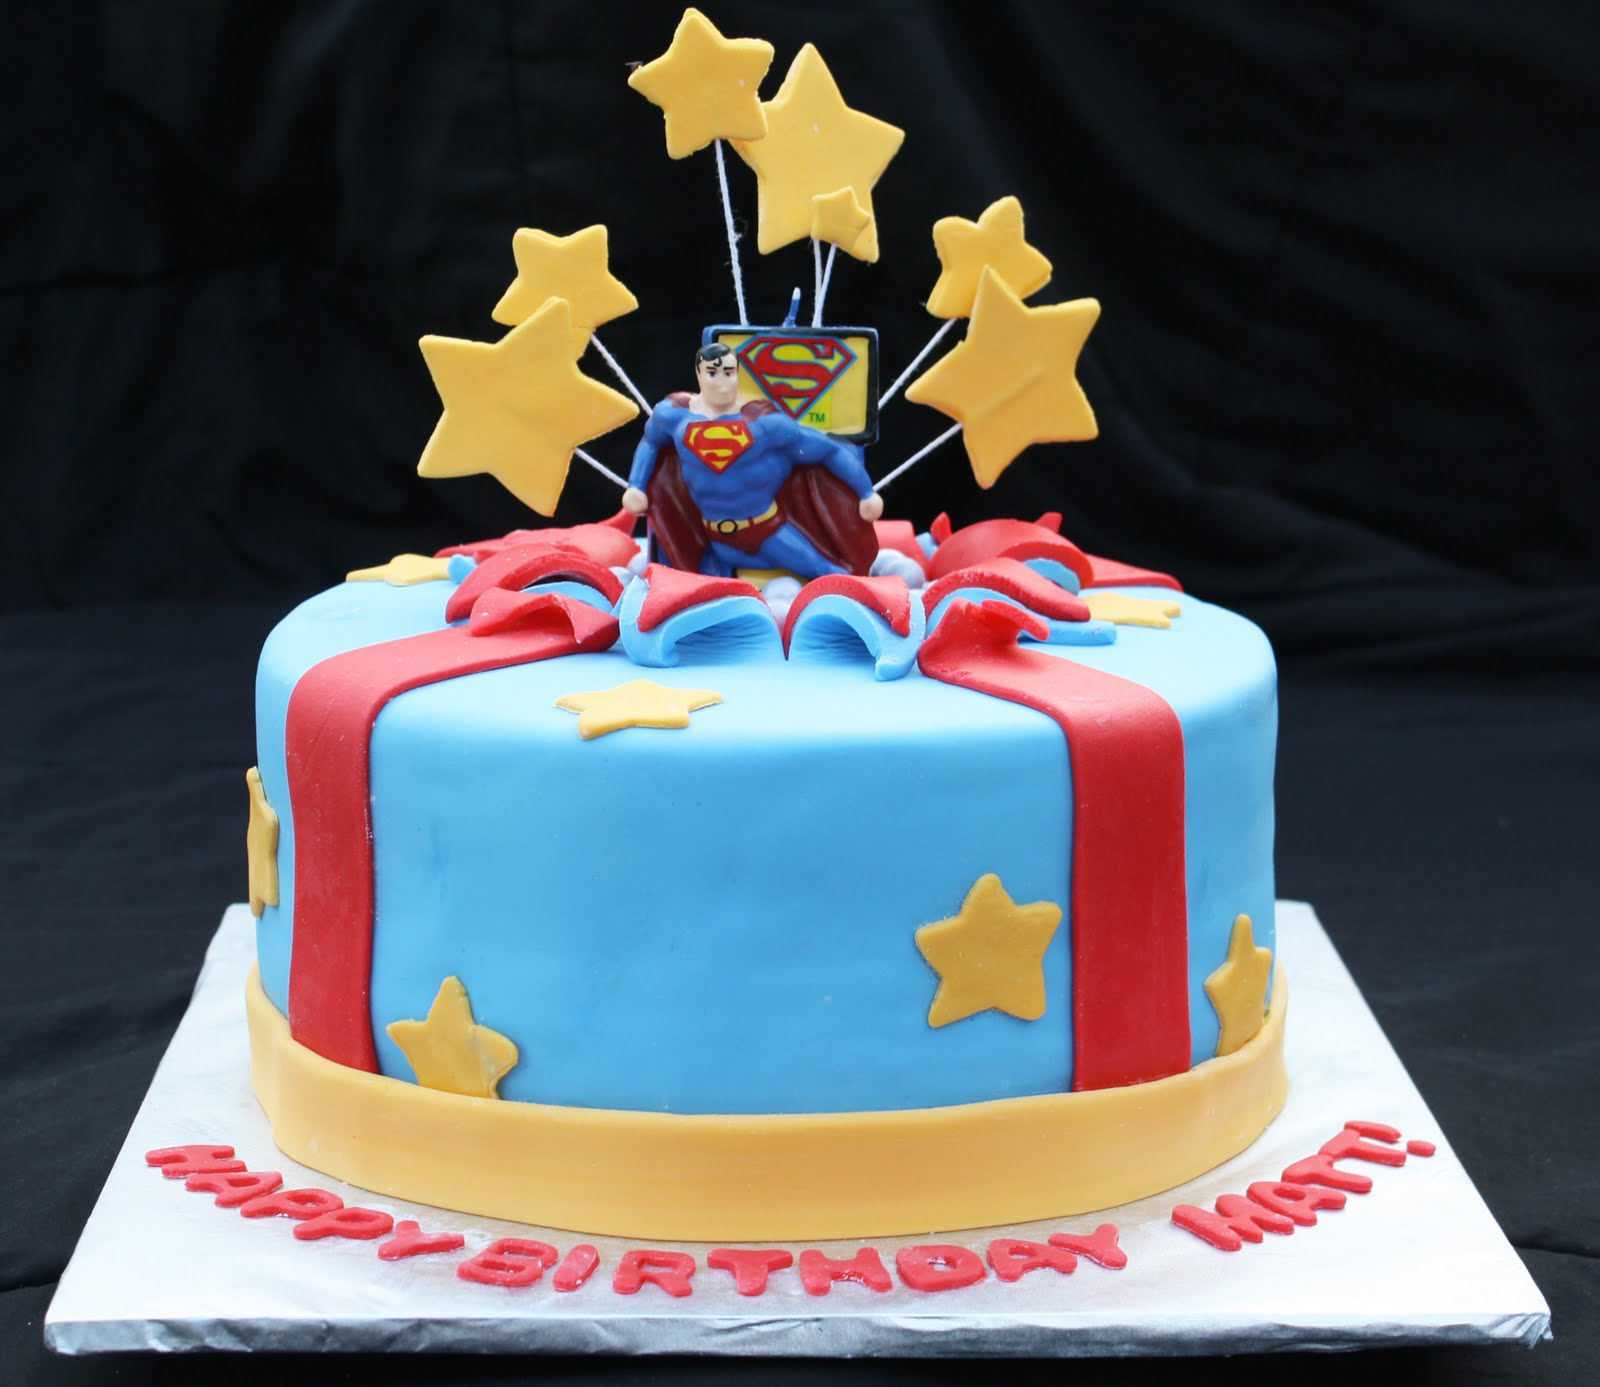 Stupendous Superman Bursting Out Of The Birthday Cake Rose Bakes Funny Birthday Cards Online Bapapcheapnameinfo